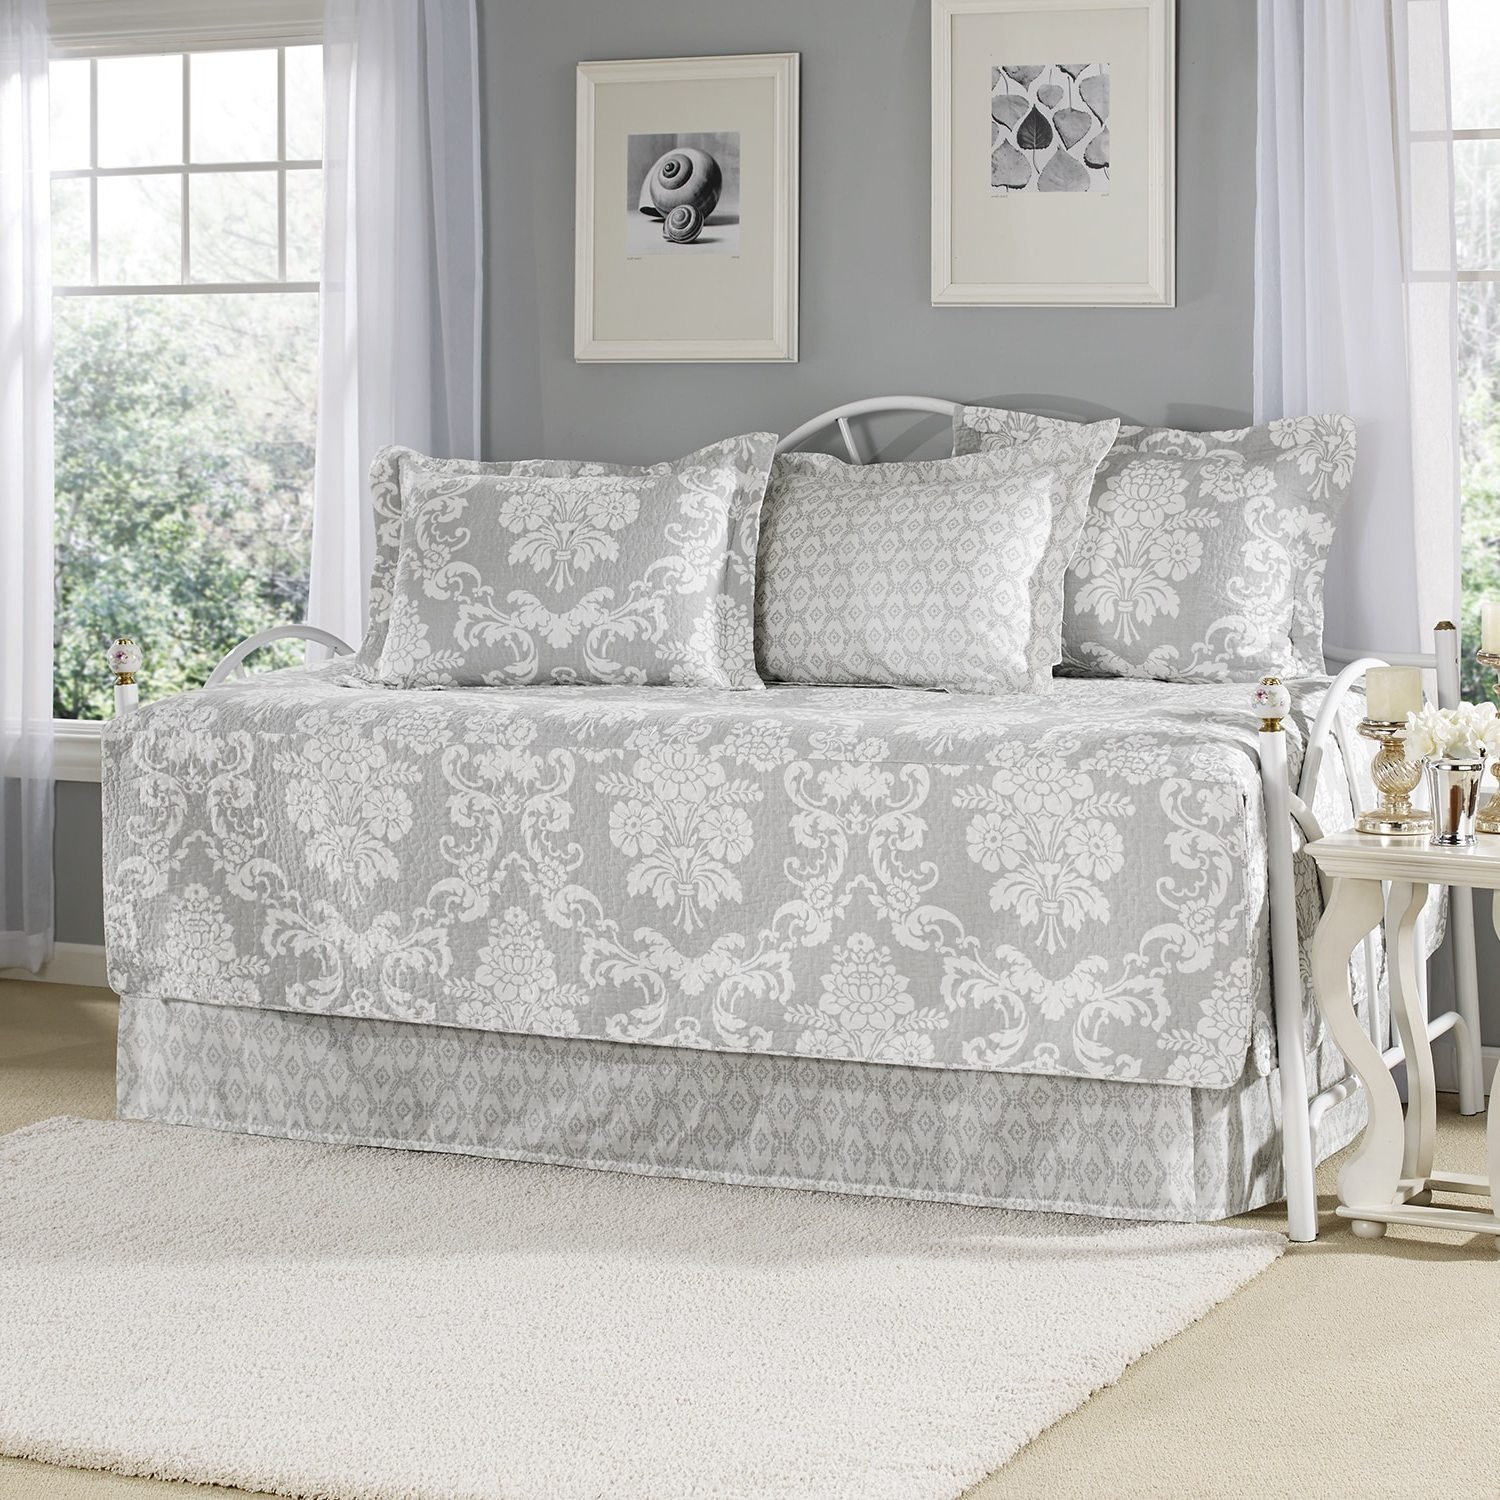 5 Piece Grey Floral Daybed Set Bedding, Geometric Coastal French Country Shabby Chic Motif Flower Design Pattern Day Bed Bedskirt Pillows, Polyester